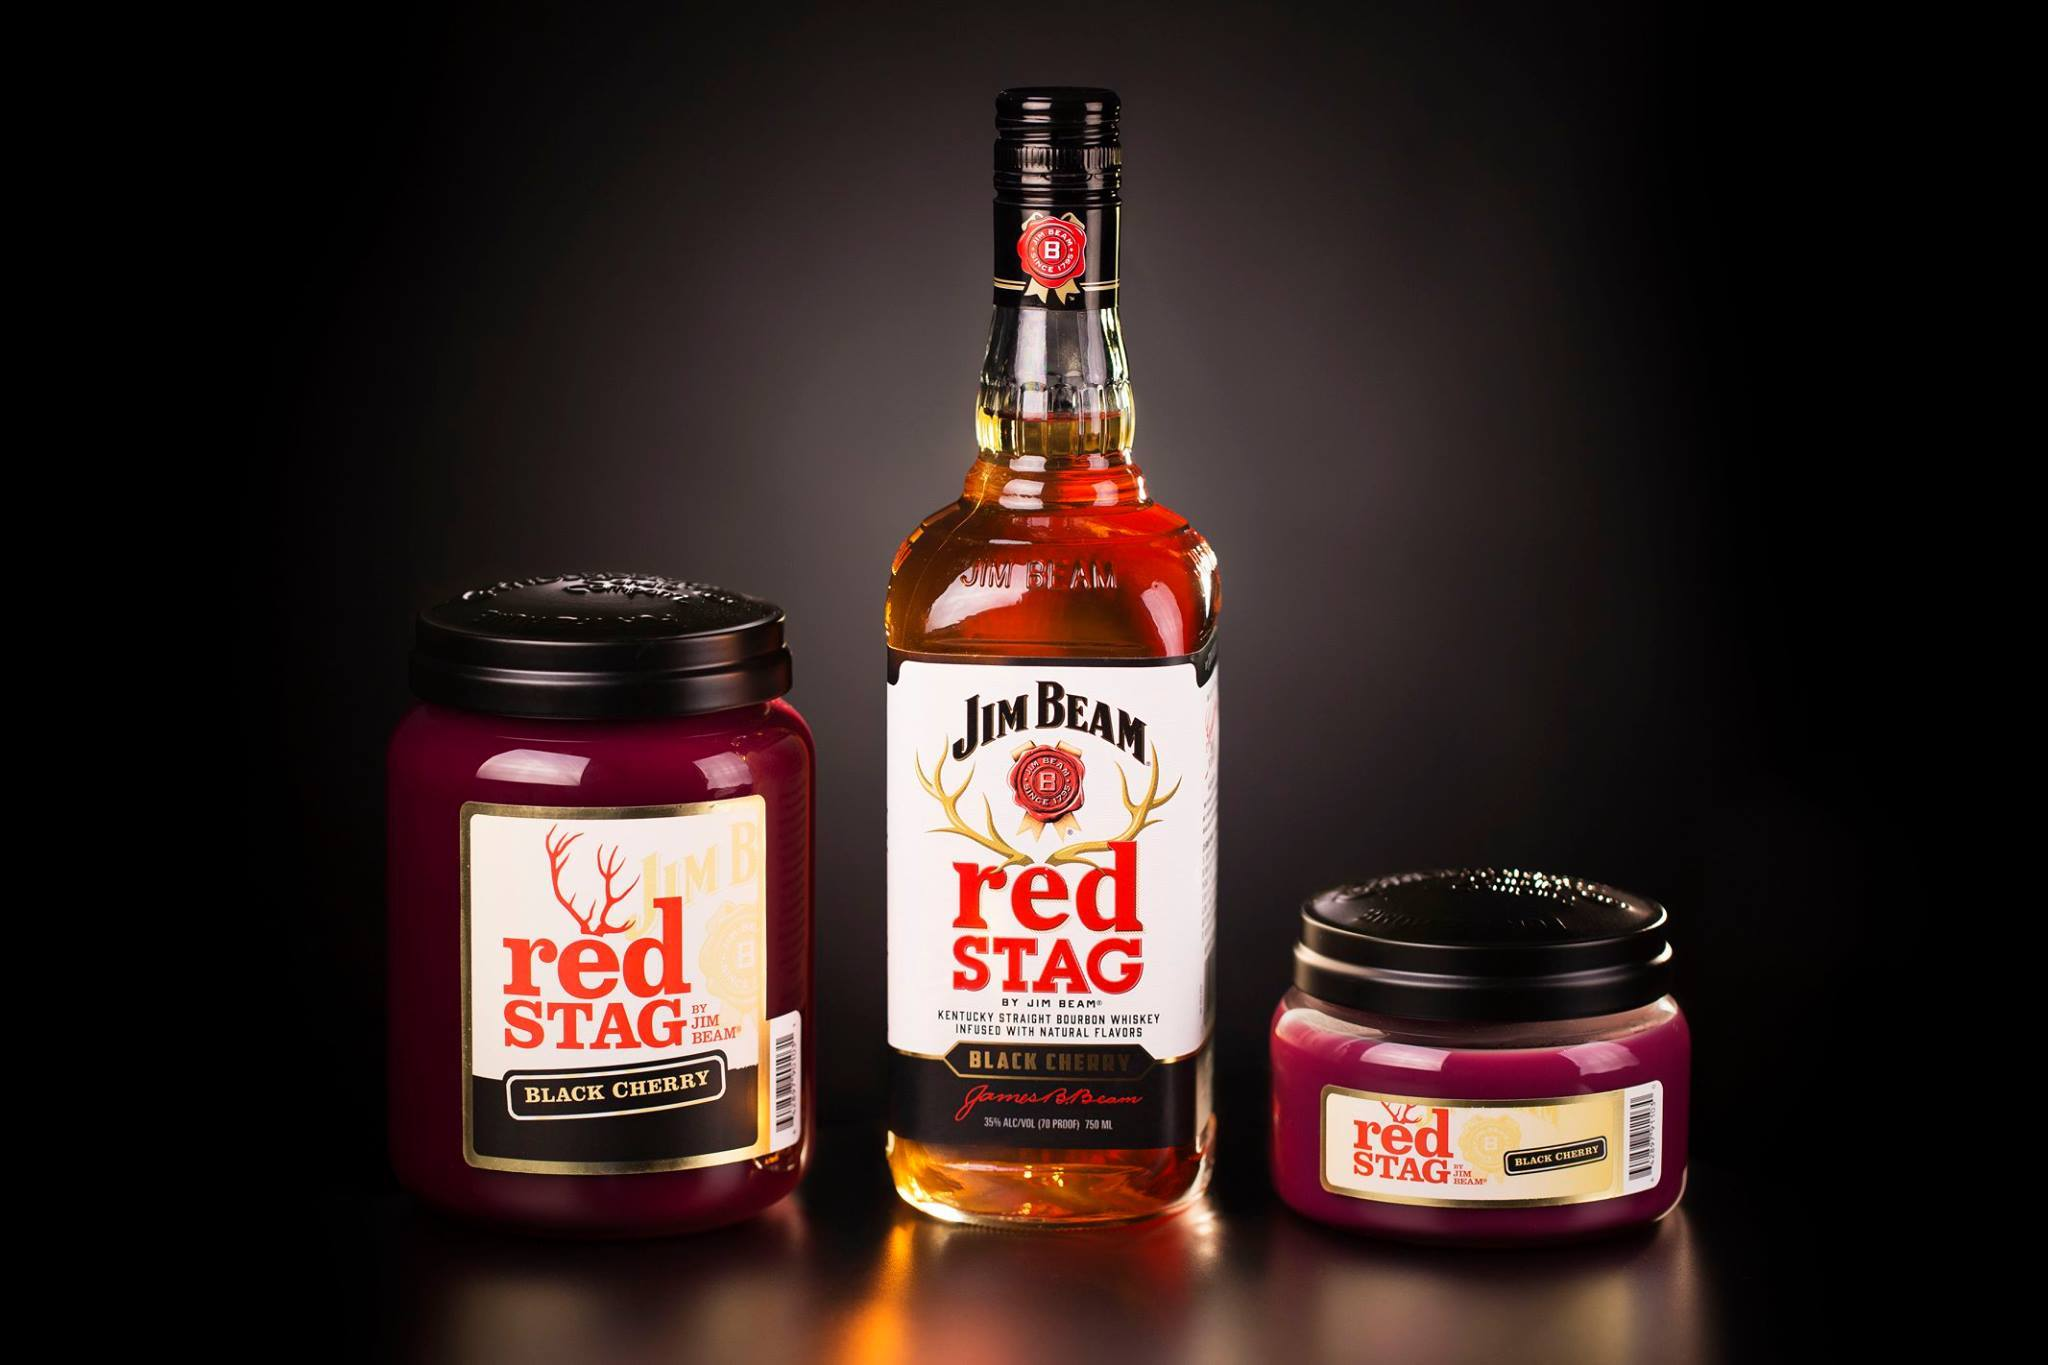 Red Stag®, Jim Beam Black Cherry®, 26 oz. Jar, Scented Candle Jim Beam, 26 oz. Large Jar Candle The Candleberry Candle Company